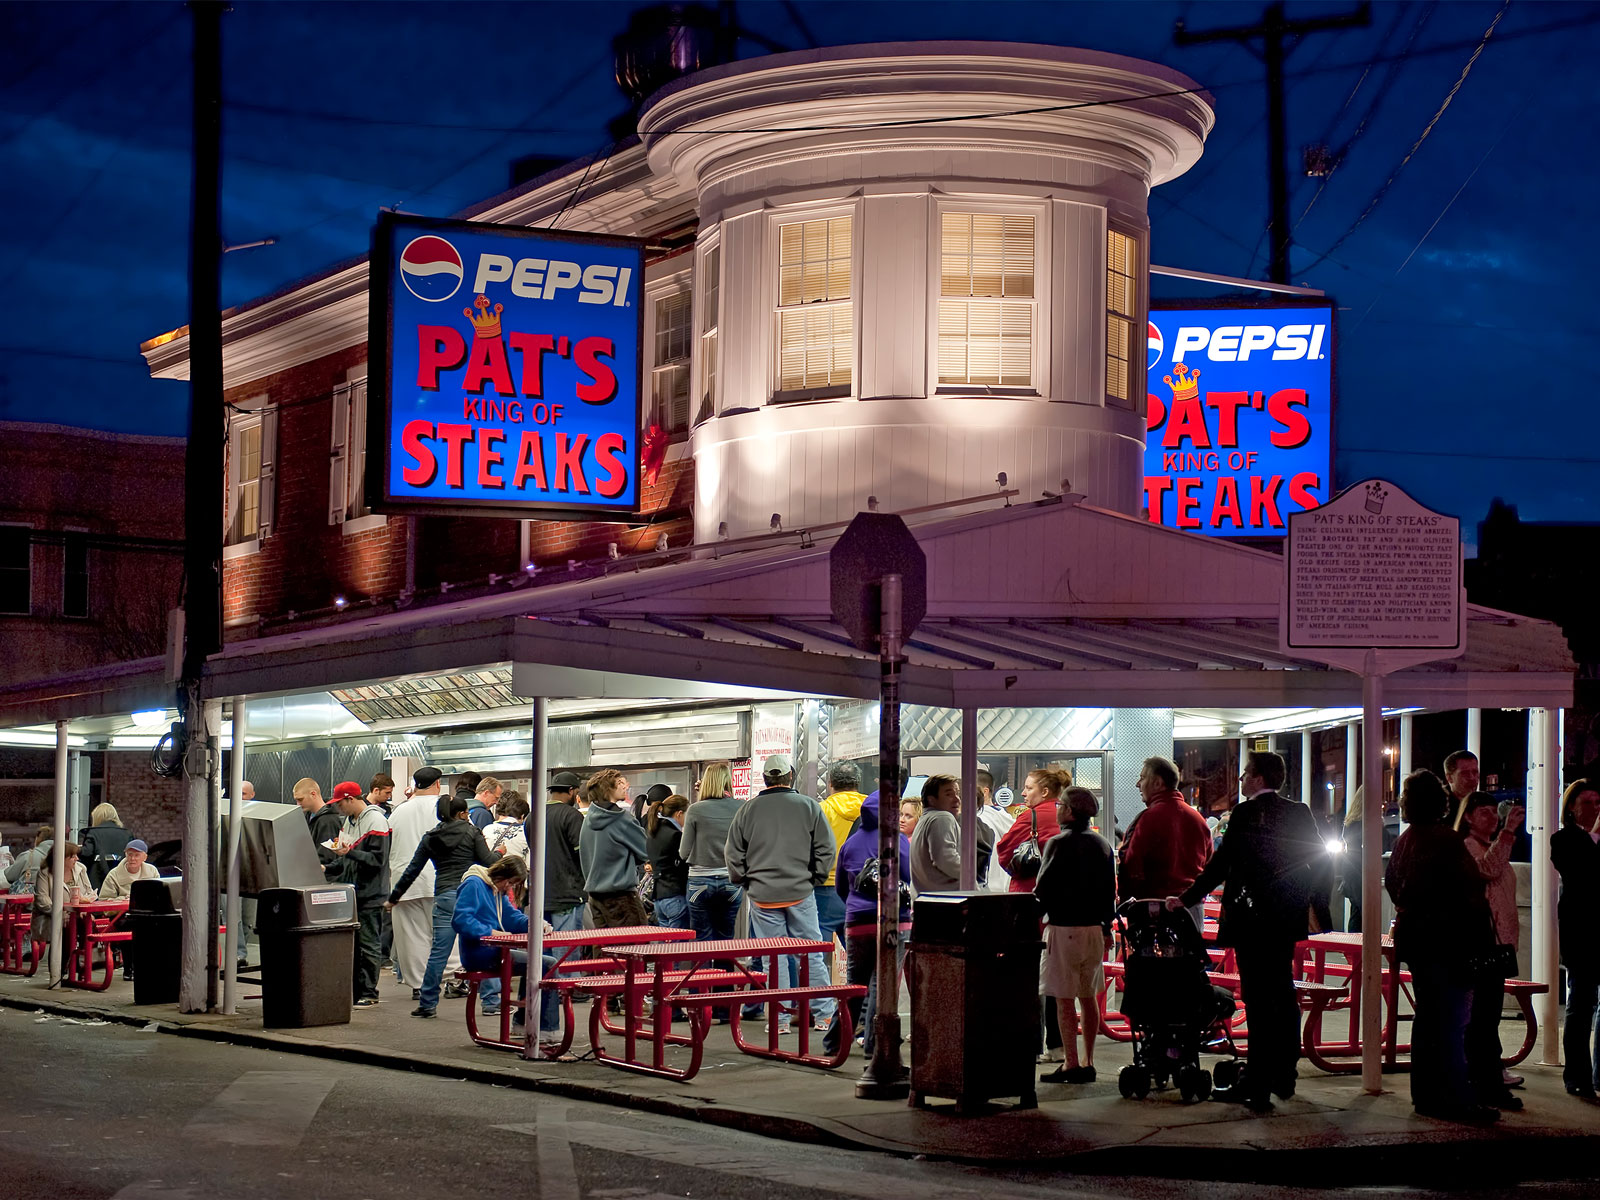 Here Are The Top Late Night Restaurants In 7 Major Cities According